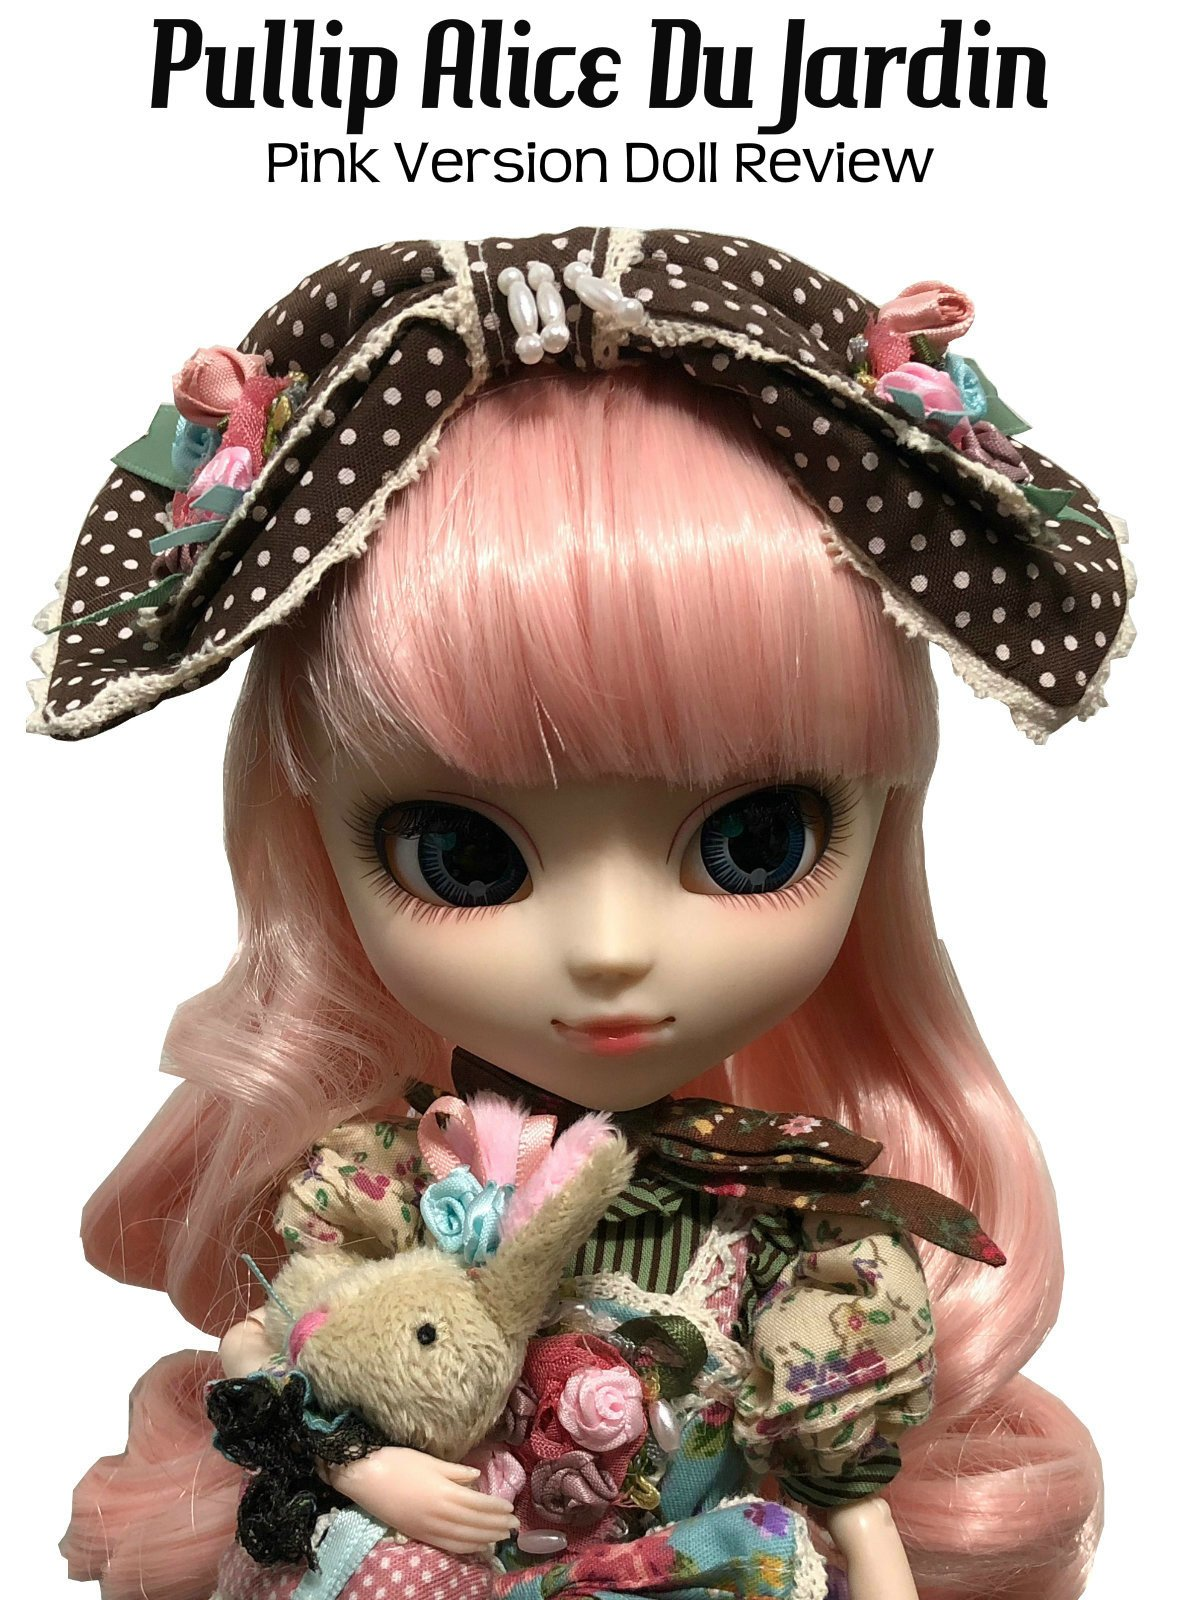 Review: Pullip Alice Du Jardin Pink Version Doll Review